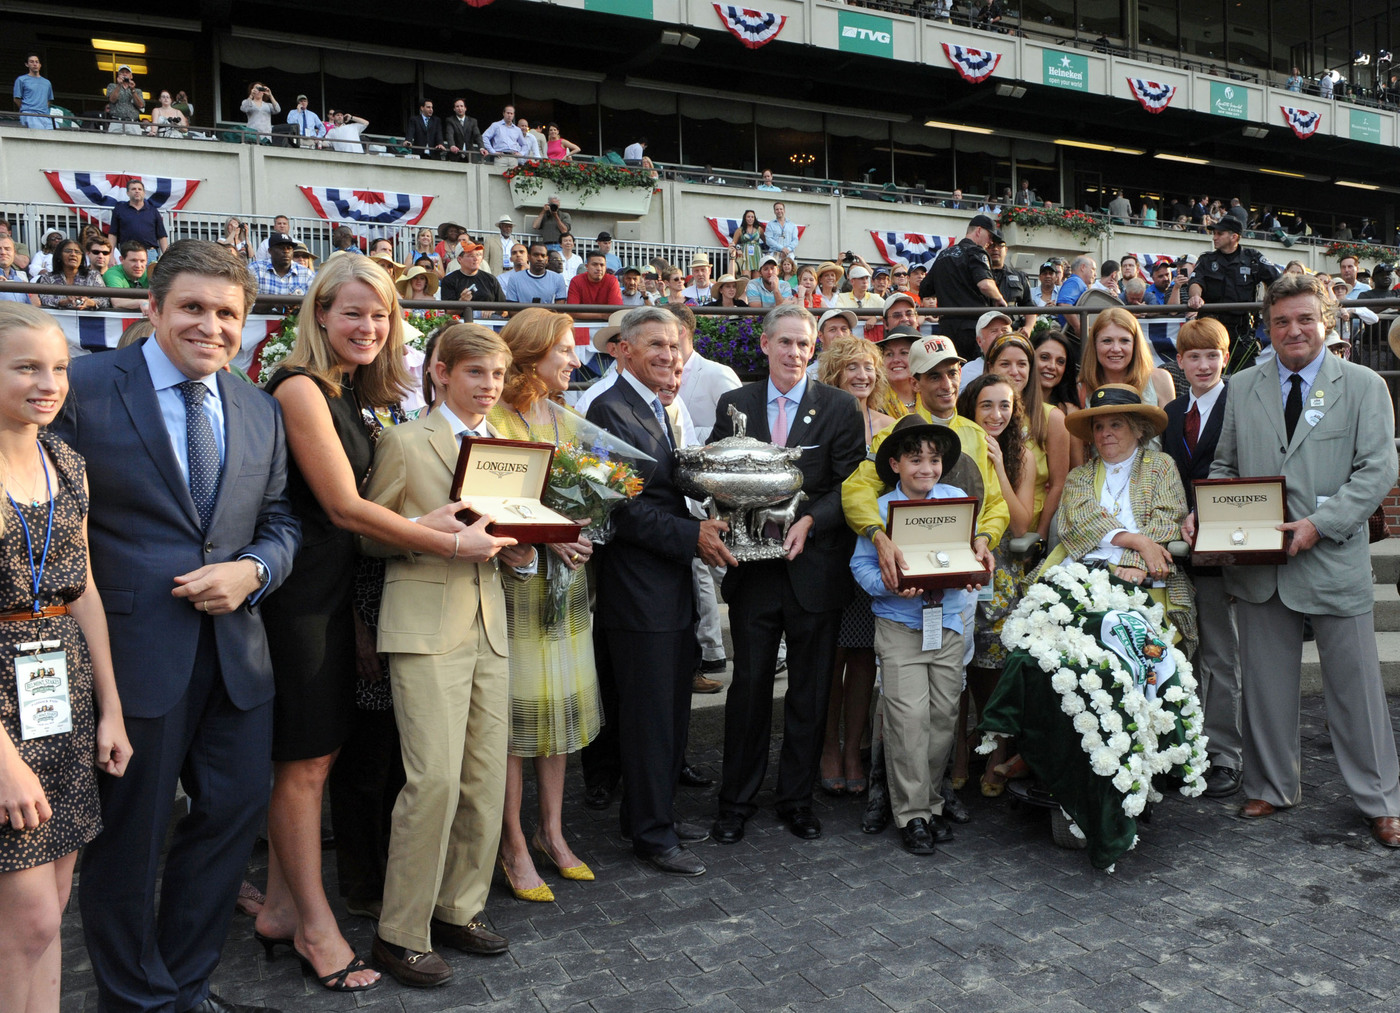 Longines Flat Racing Event: Longines, Official Watch of the 2012 Belmont Stakes 5